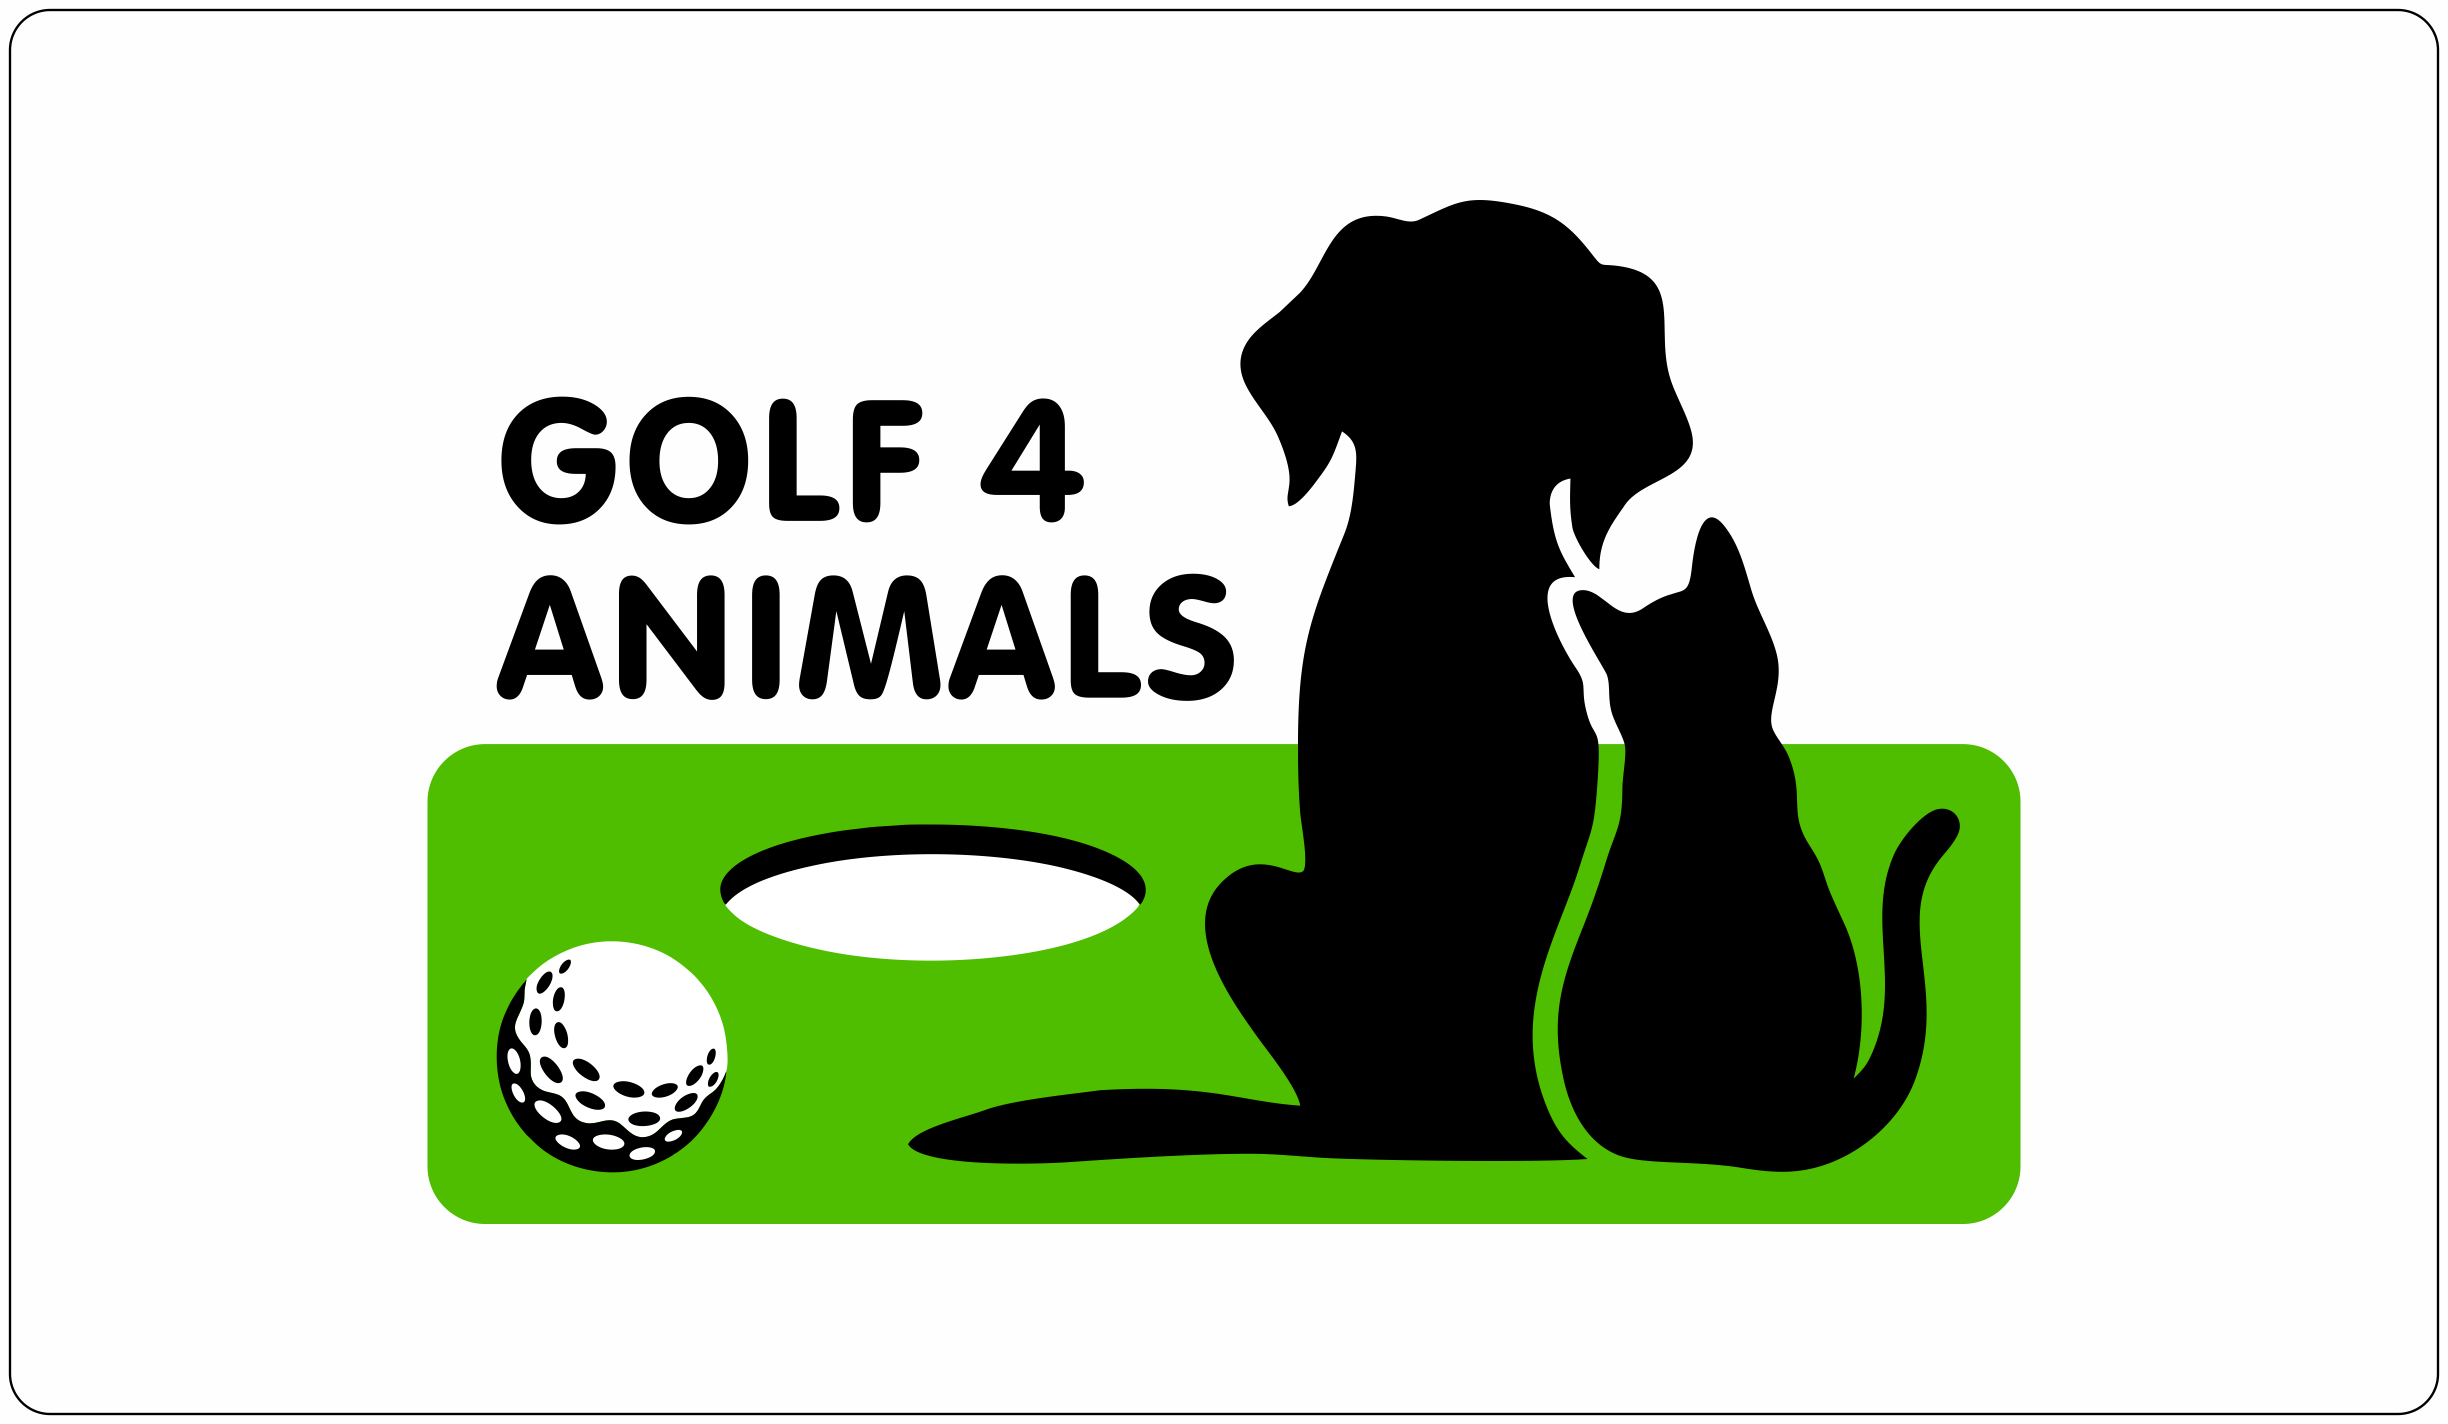 Golf4animals